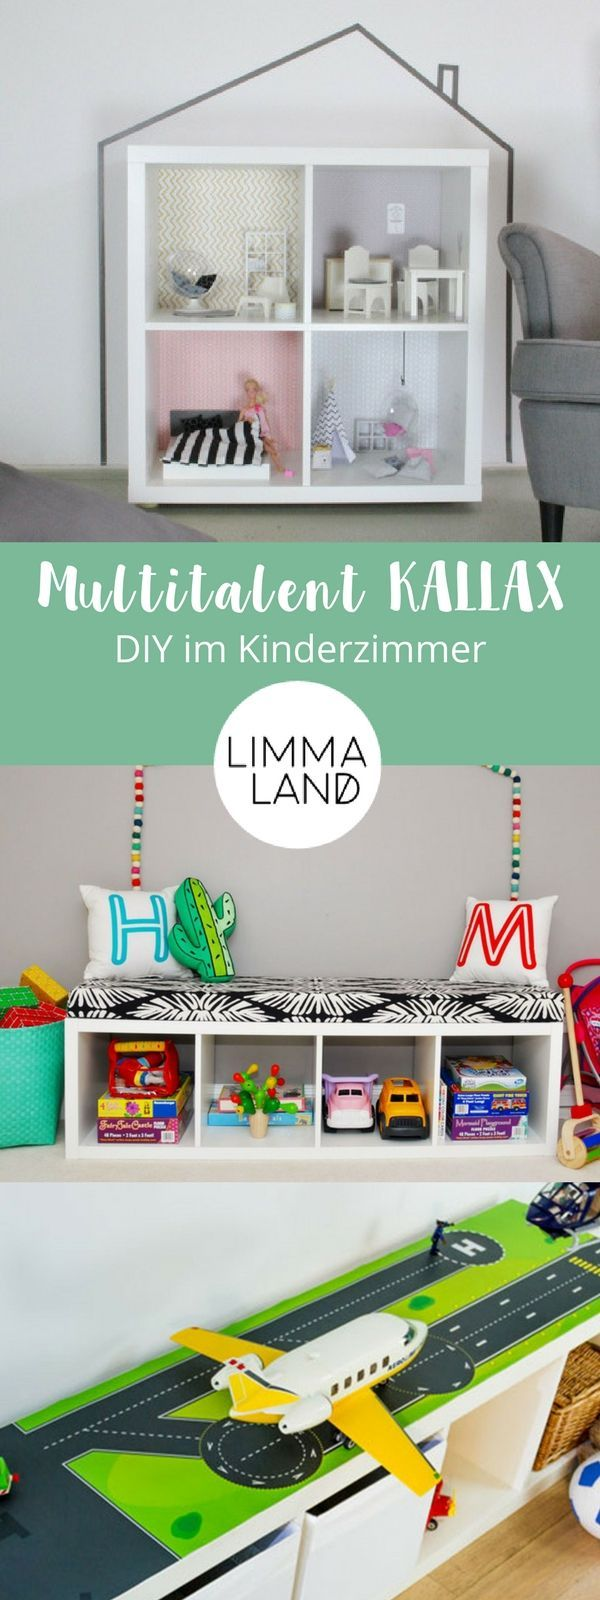 best 25 ikea kids playroom ideas on pinterest ikea. Black Bedroom Furniture Sets. Home Design Ideas